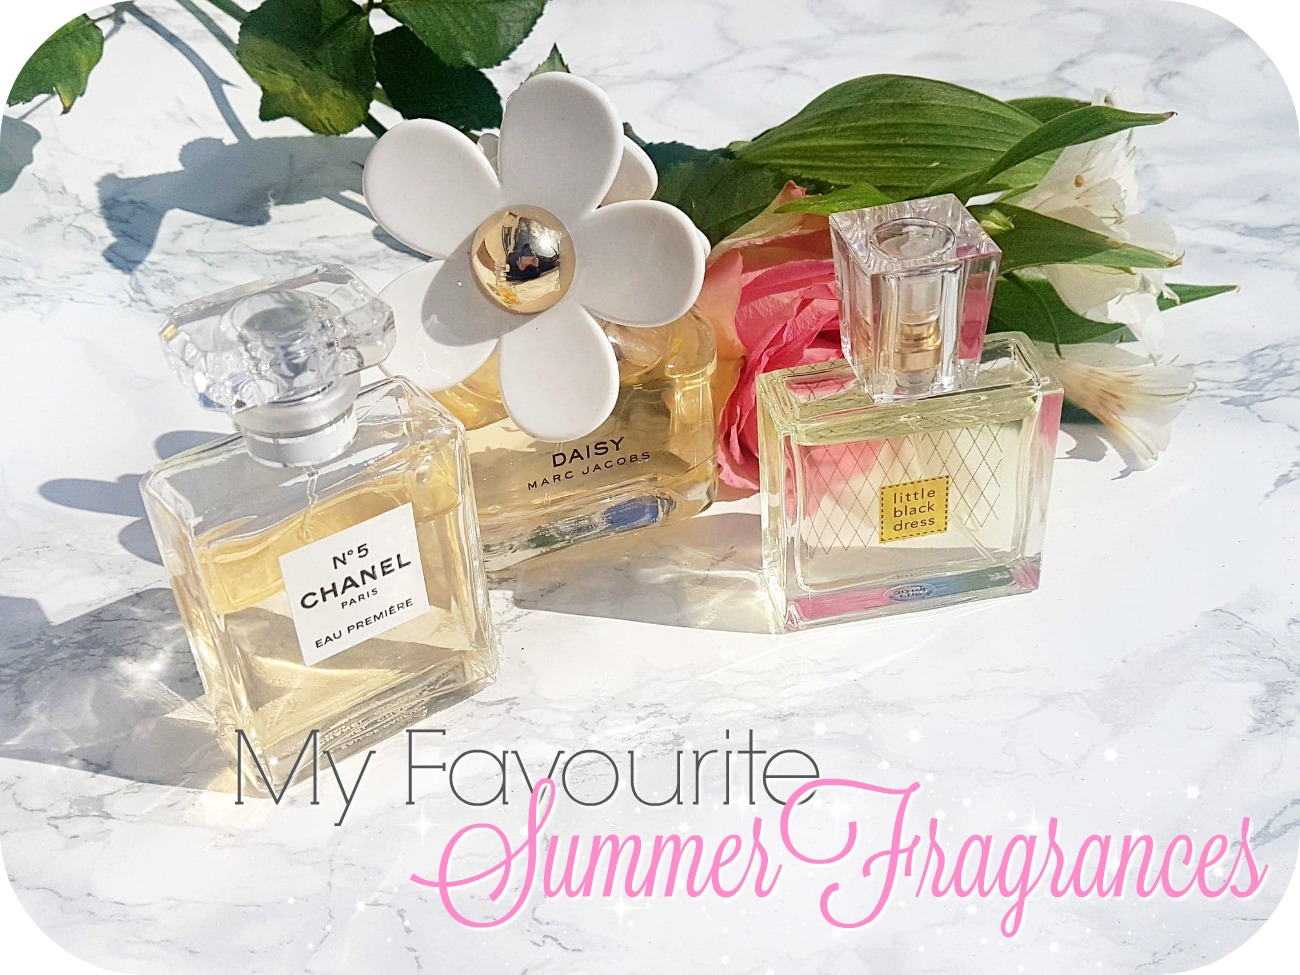 888b2563d067 I do have a VERY big perfume collection stashed in my bedroom! I like to  have different scents for different seasons and occasions and I think that  a ...